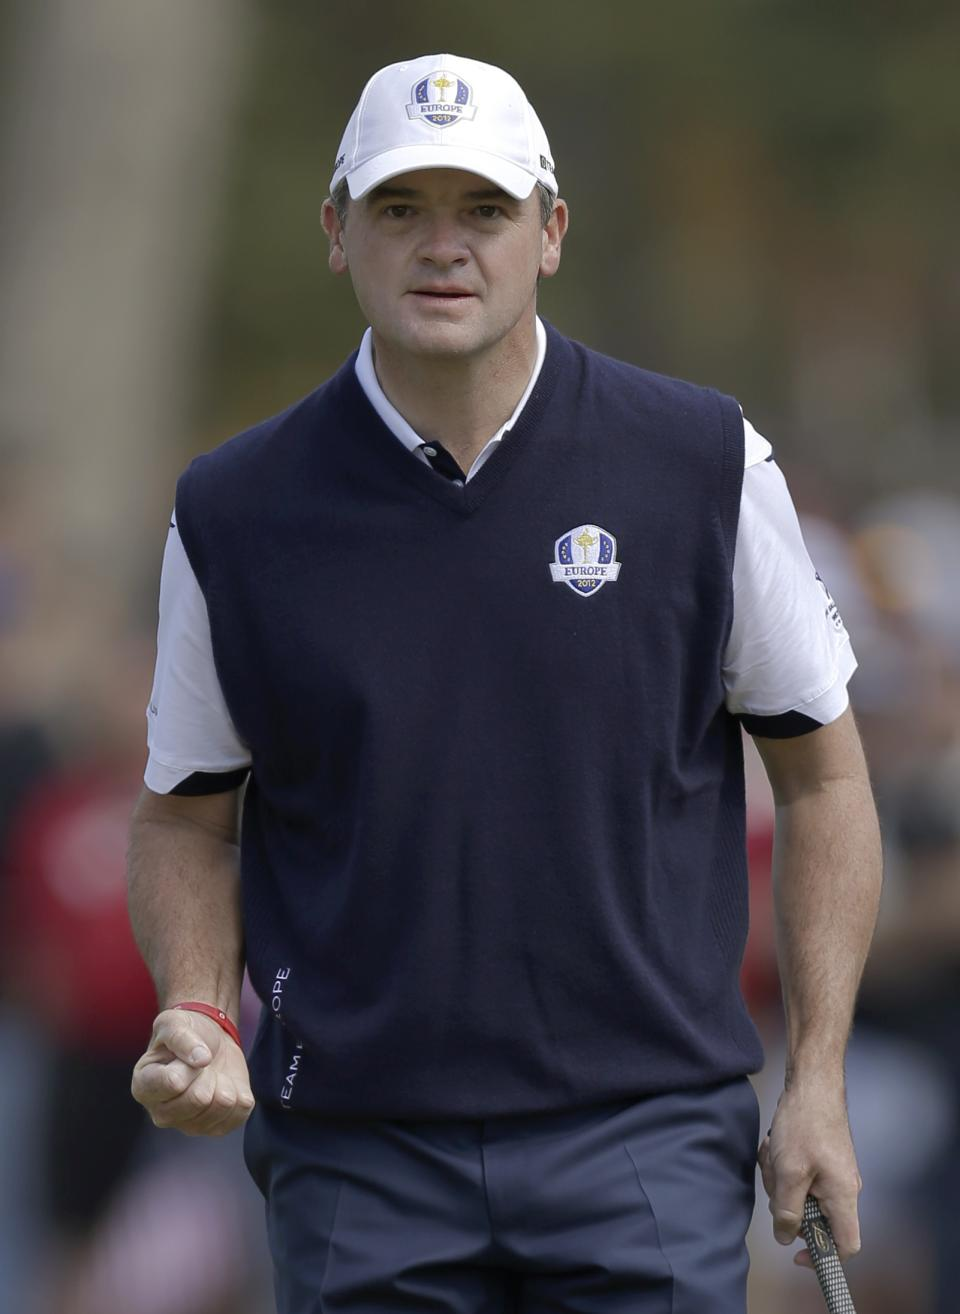 Europe's Paul Lawrie reacts after making a putt on the third hole during a singles match at the Ryder Cup PGA golf tournament Sunday, Sept. 30, 2012, at the Medinah Country Club in Medinah, Ill. (AP Photo/David J. Phillip)